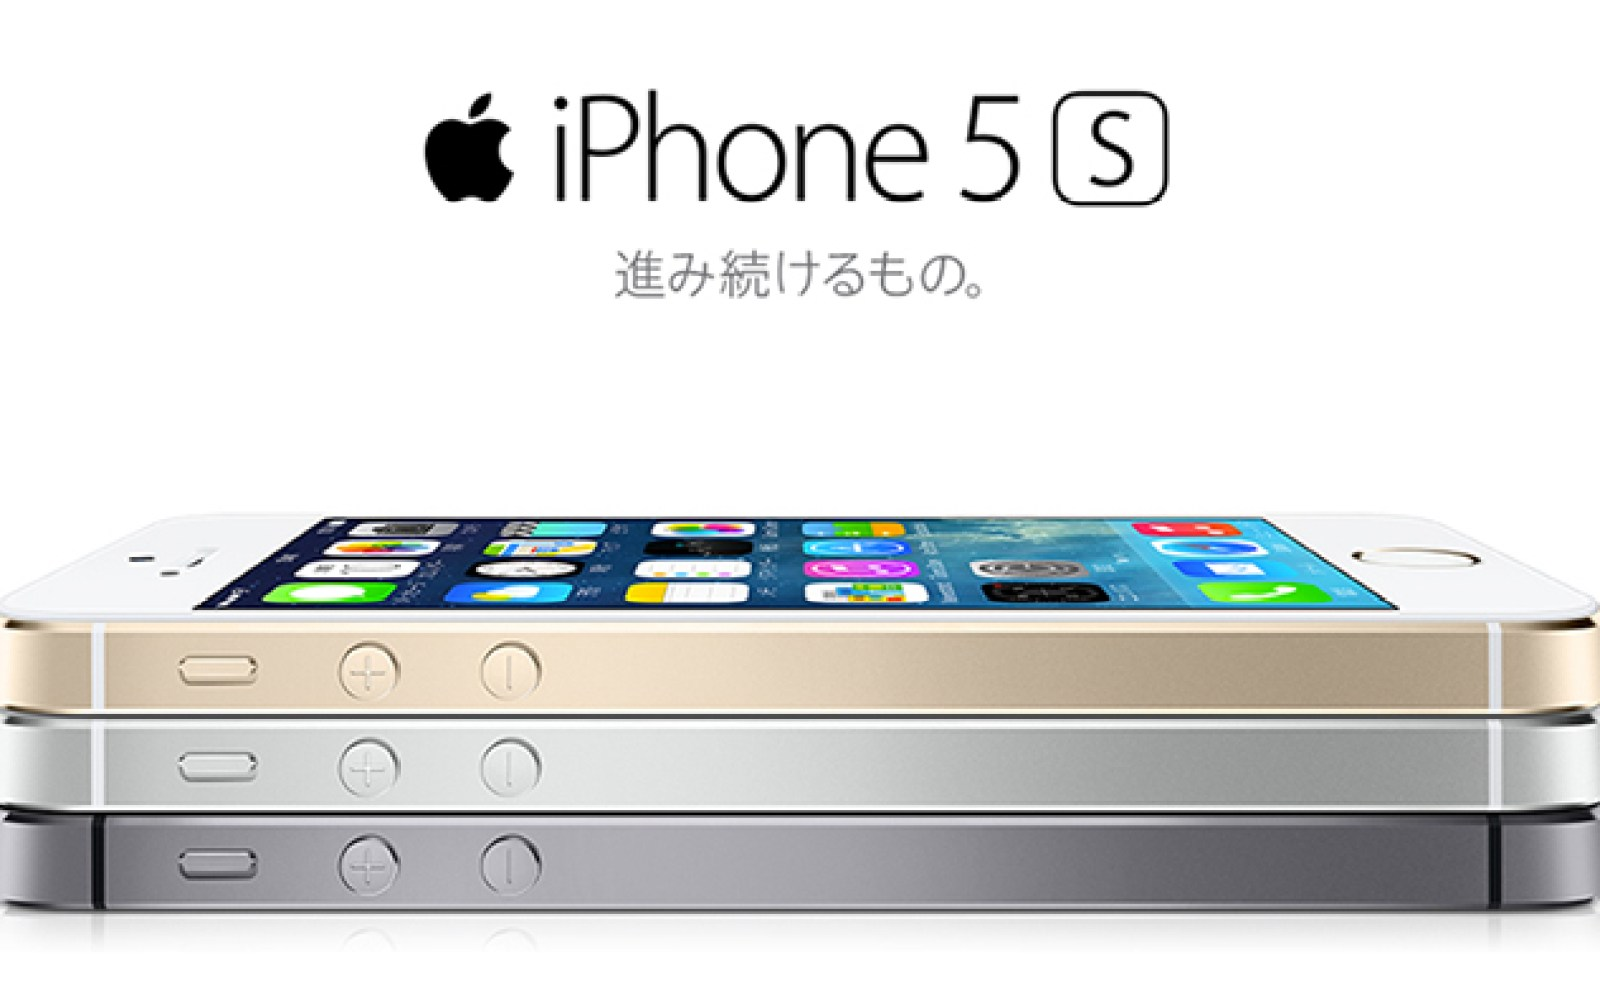 iPhone 5s and 5c take lions share of Japan smartphone sales in October